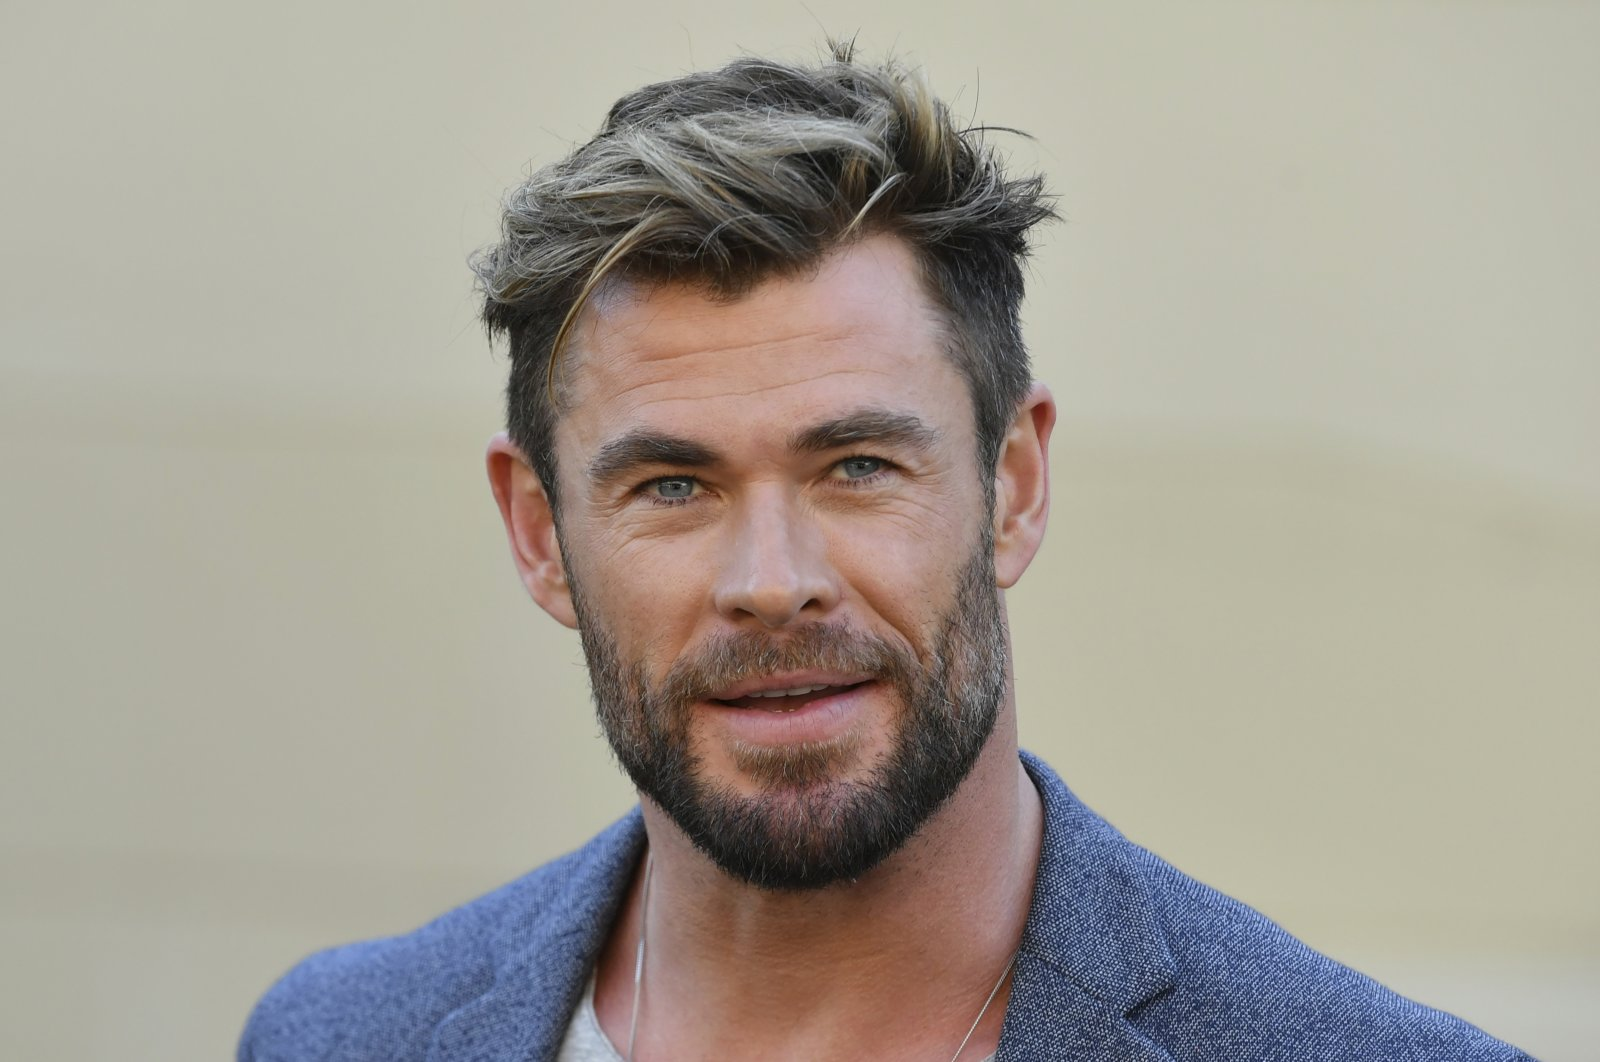 """Actor Chris Hemsworth attends a press conference to announce the new """"Mad Max"""" film at Fox Studios in Sydney, Australia, April 19, 2021. (AP Photo)"""